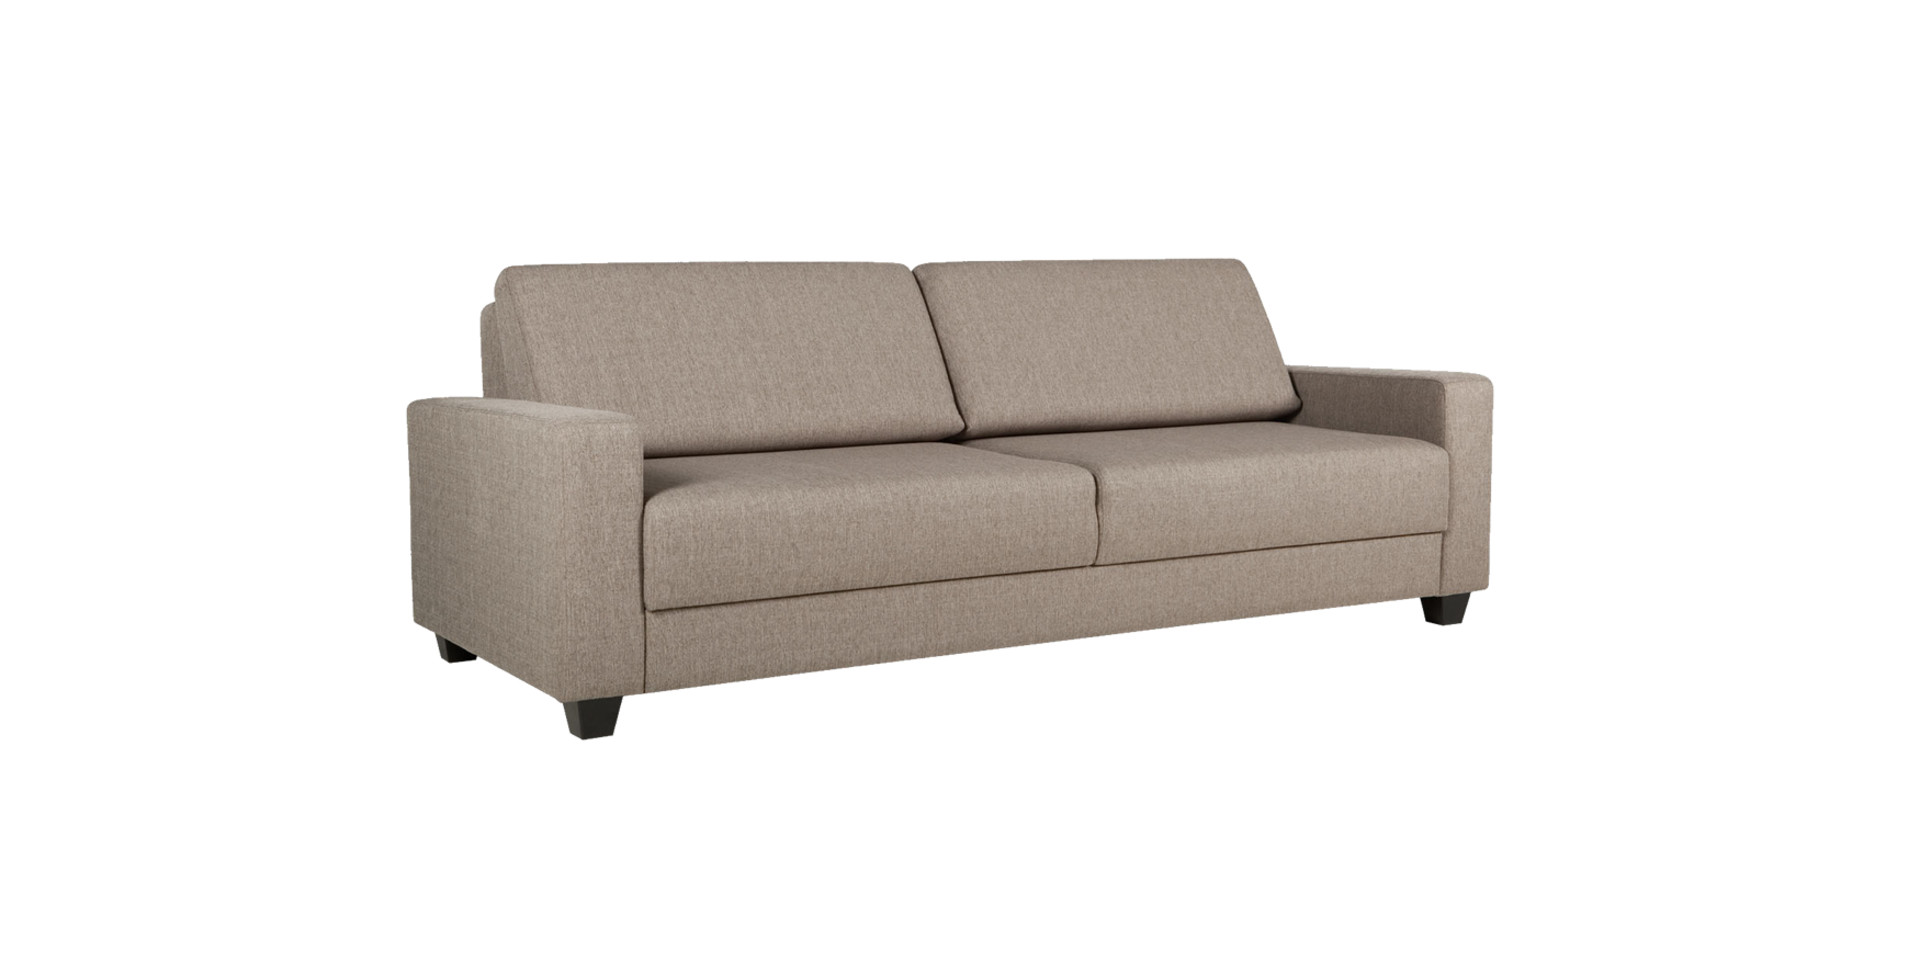 sits-bari-canape-convertible-sofa_bed_cedros3_light_brown_2